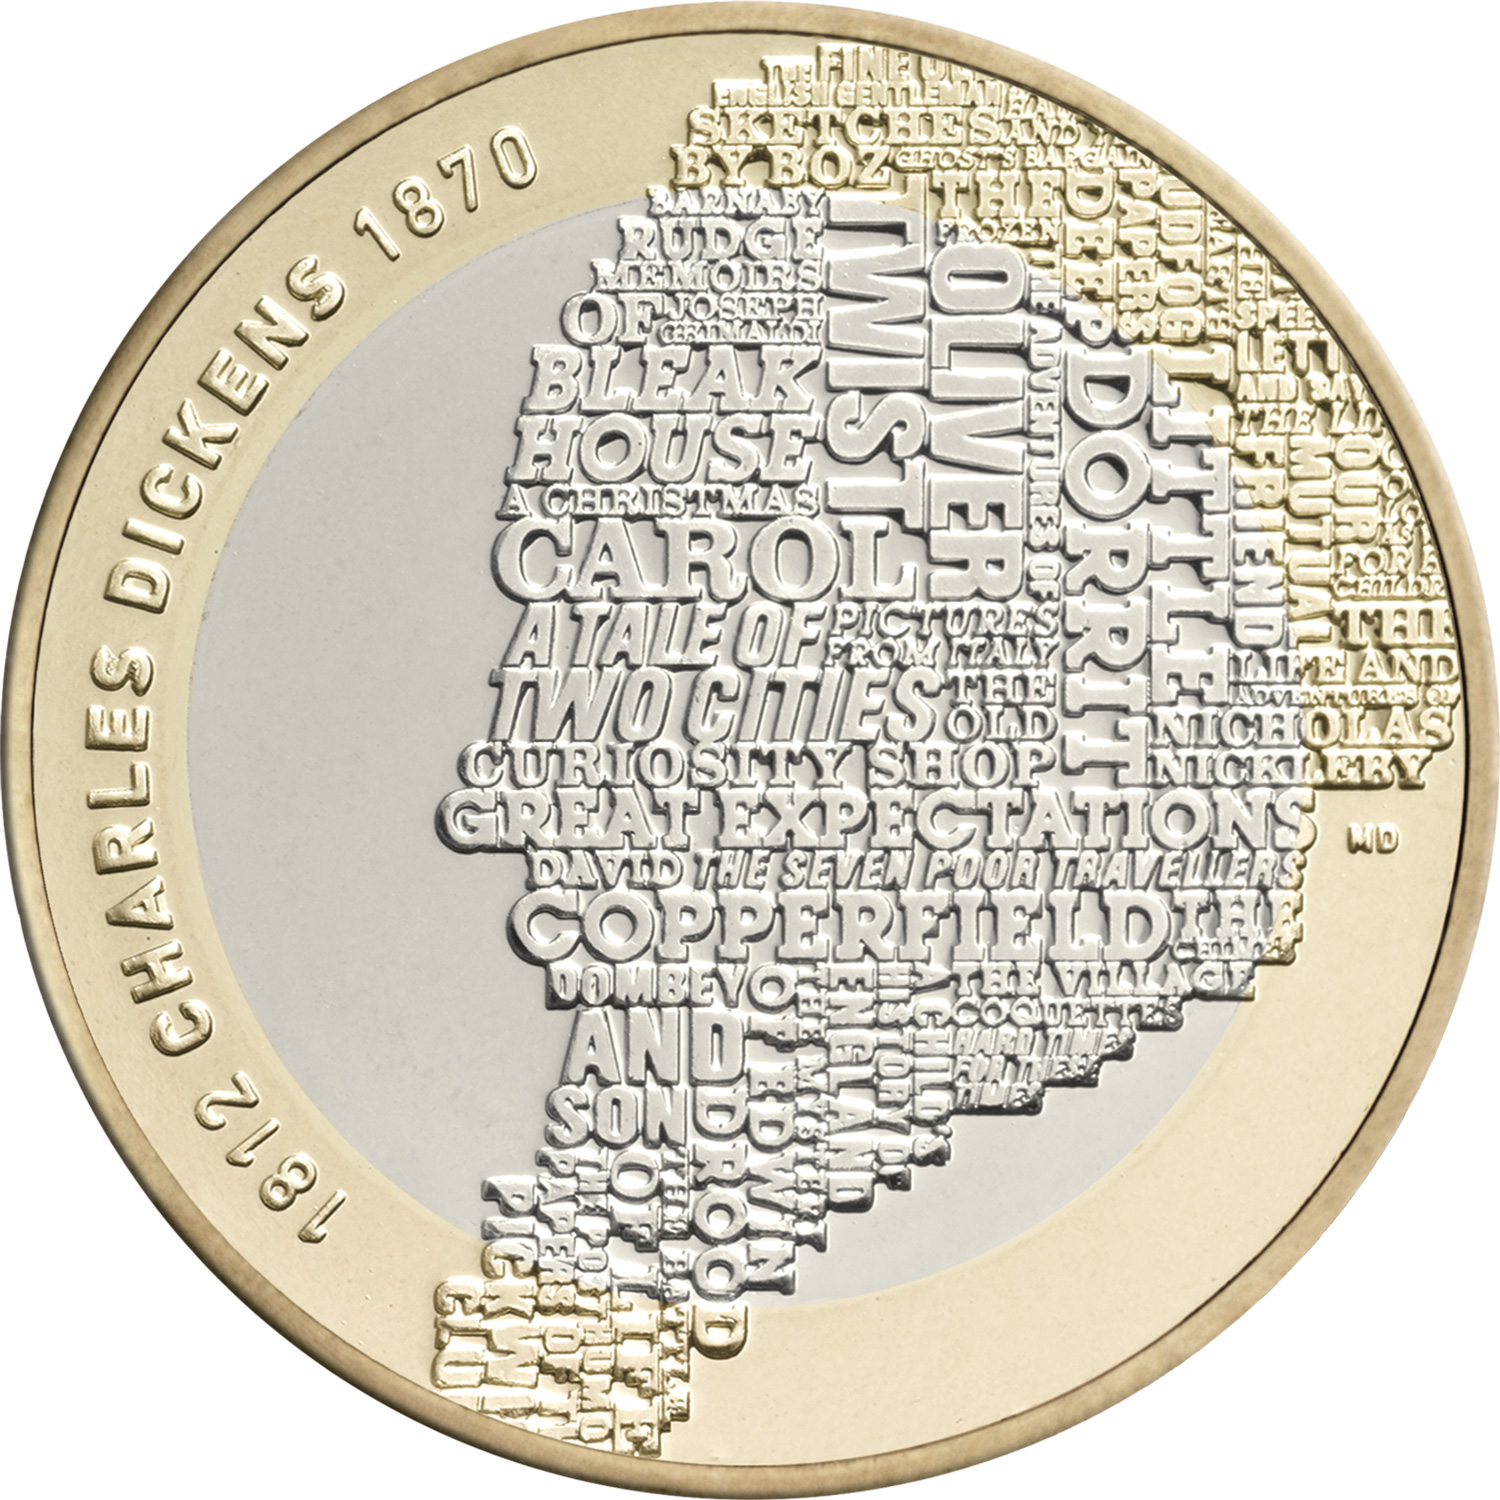 Design of the Charles Dickens £2 coin